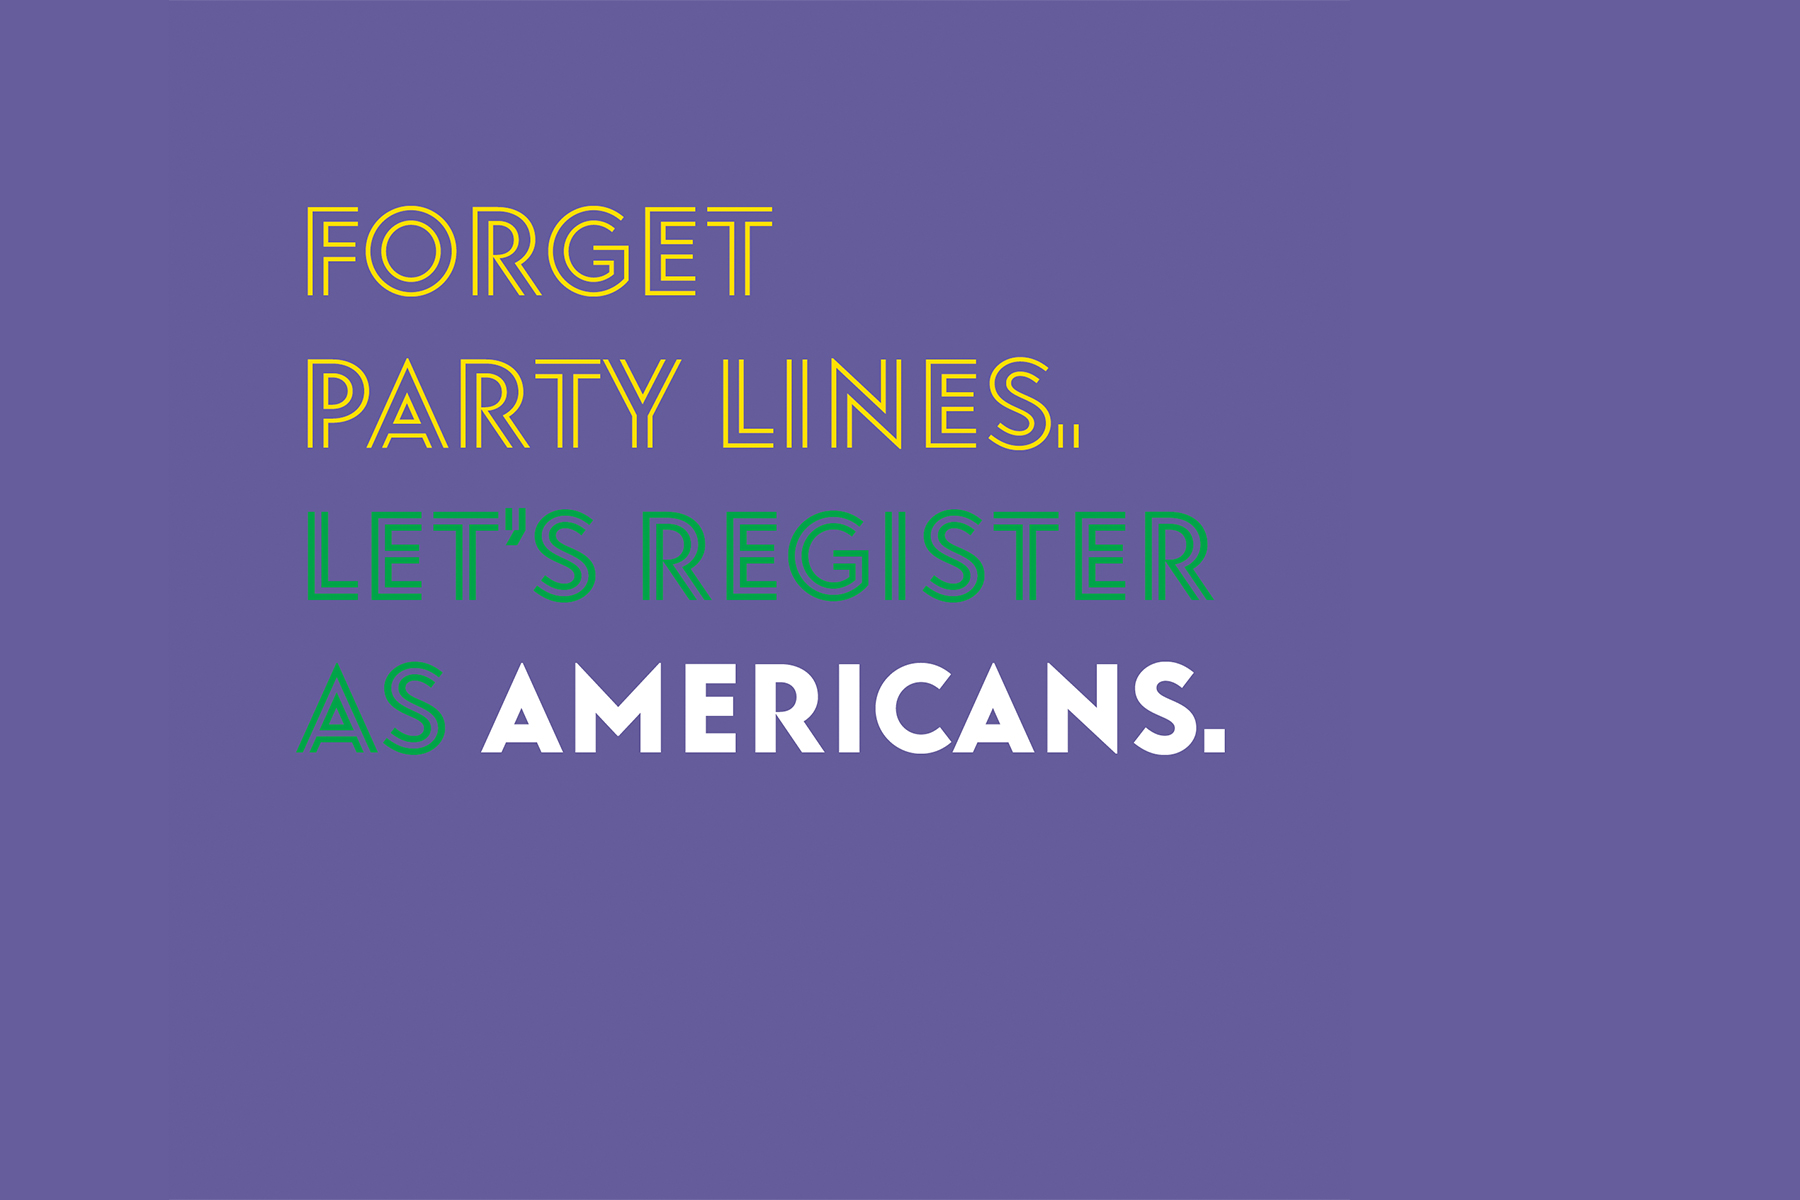 Forget party lines. Let's register as Americans.